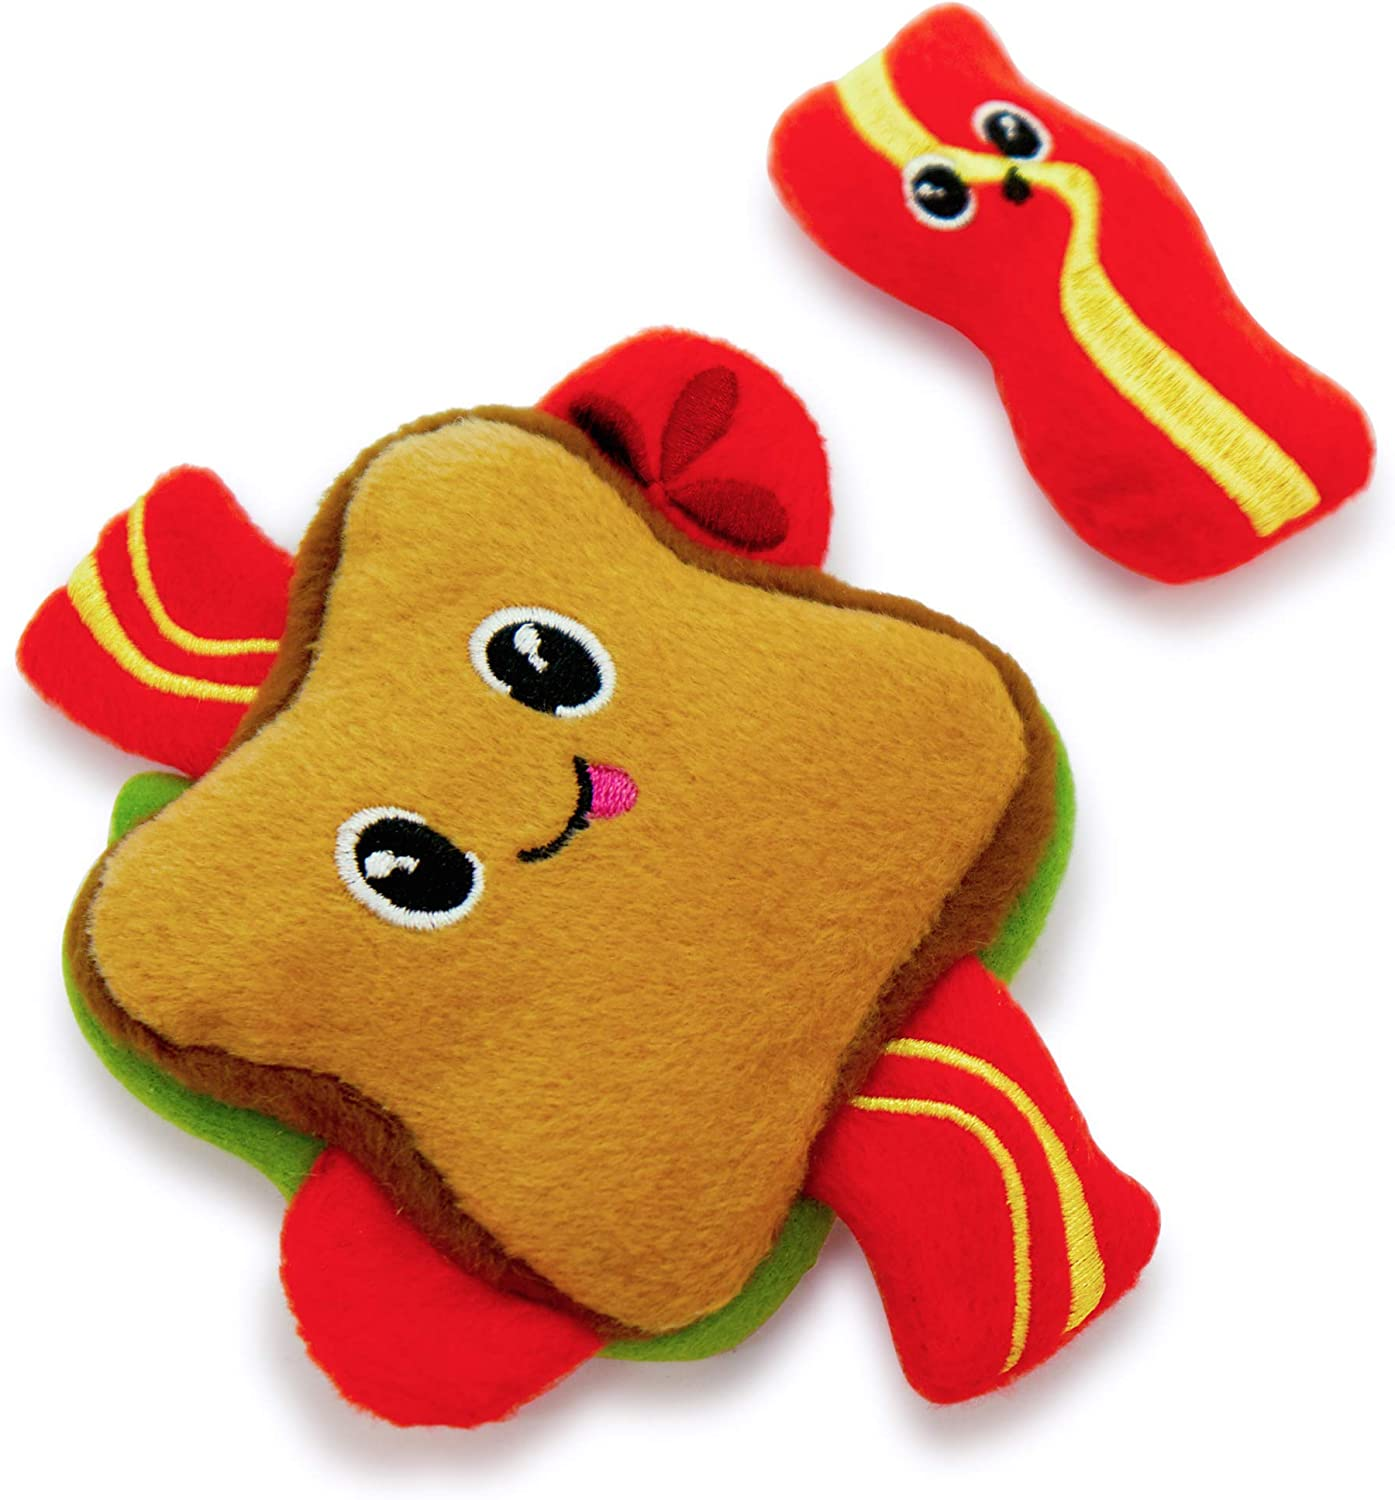 Pet Craft Supply Silly Snacks and Funny Food Crinkle Cuddling Catnip and Silvervine Toys